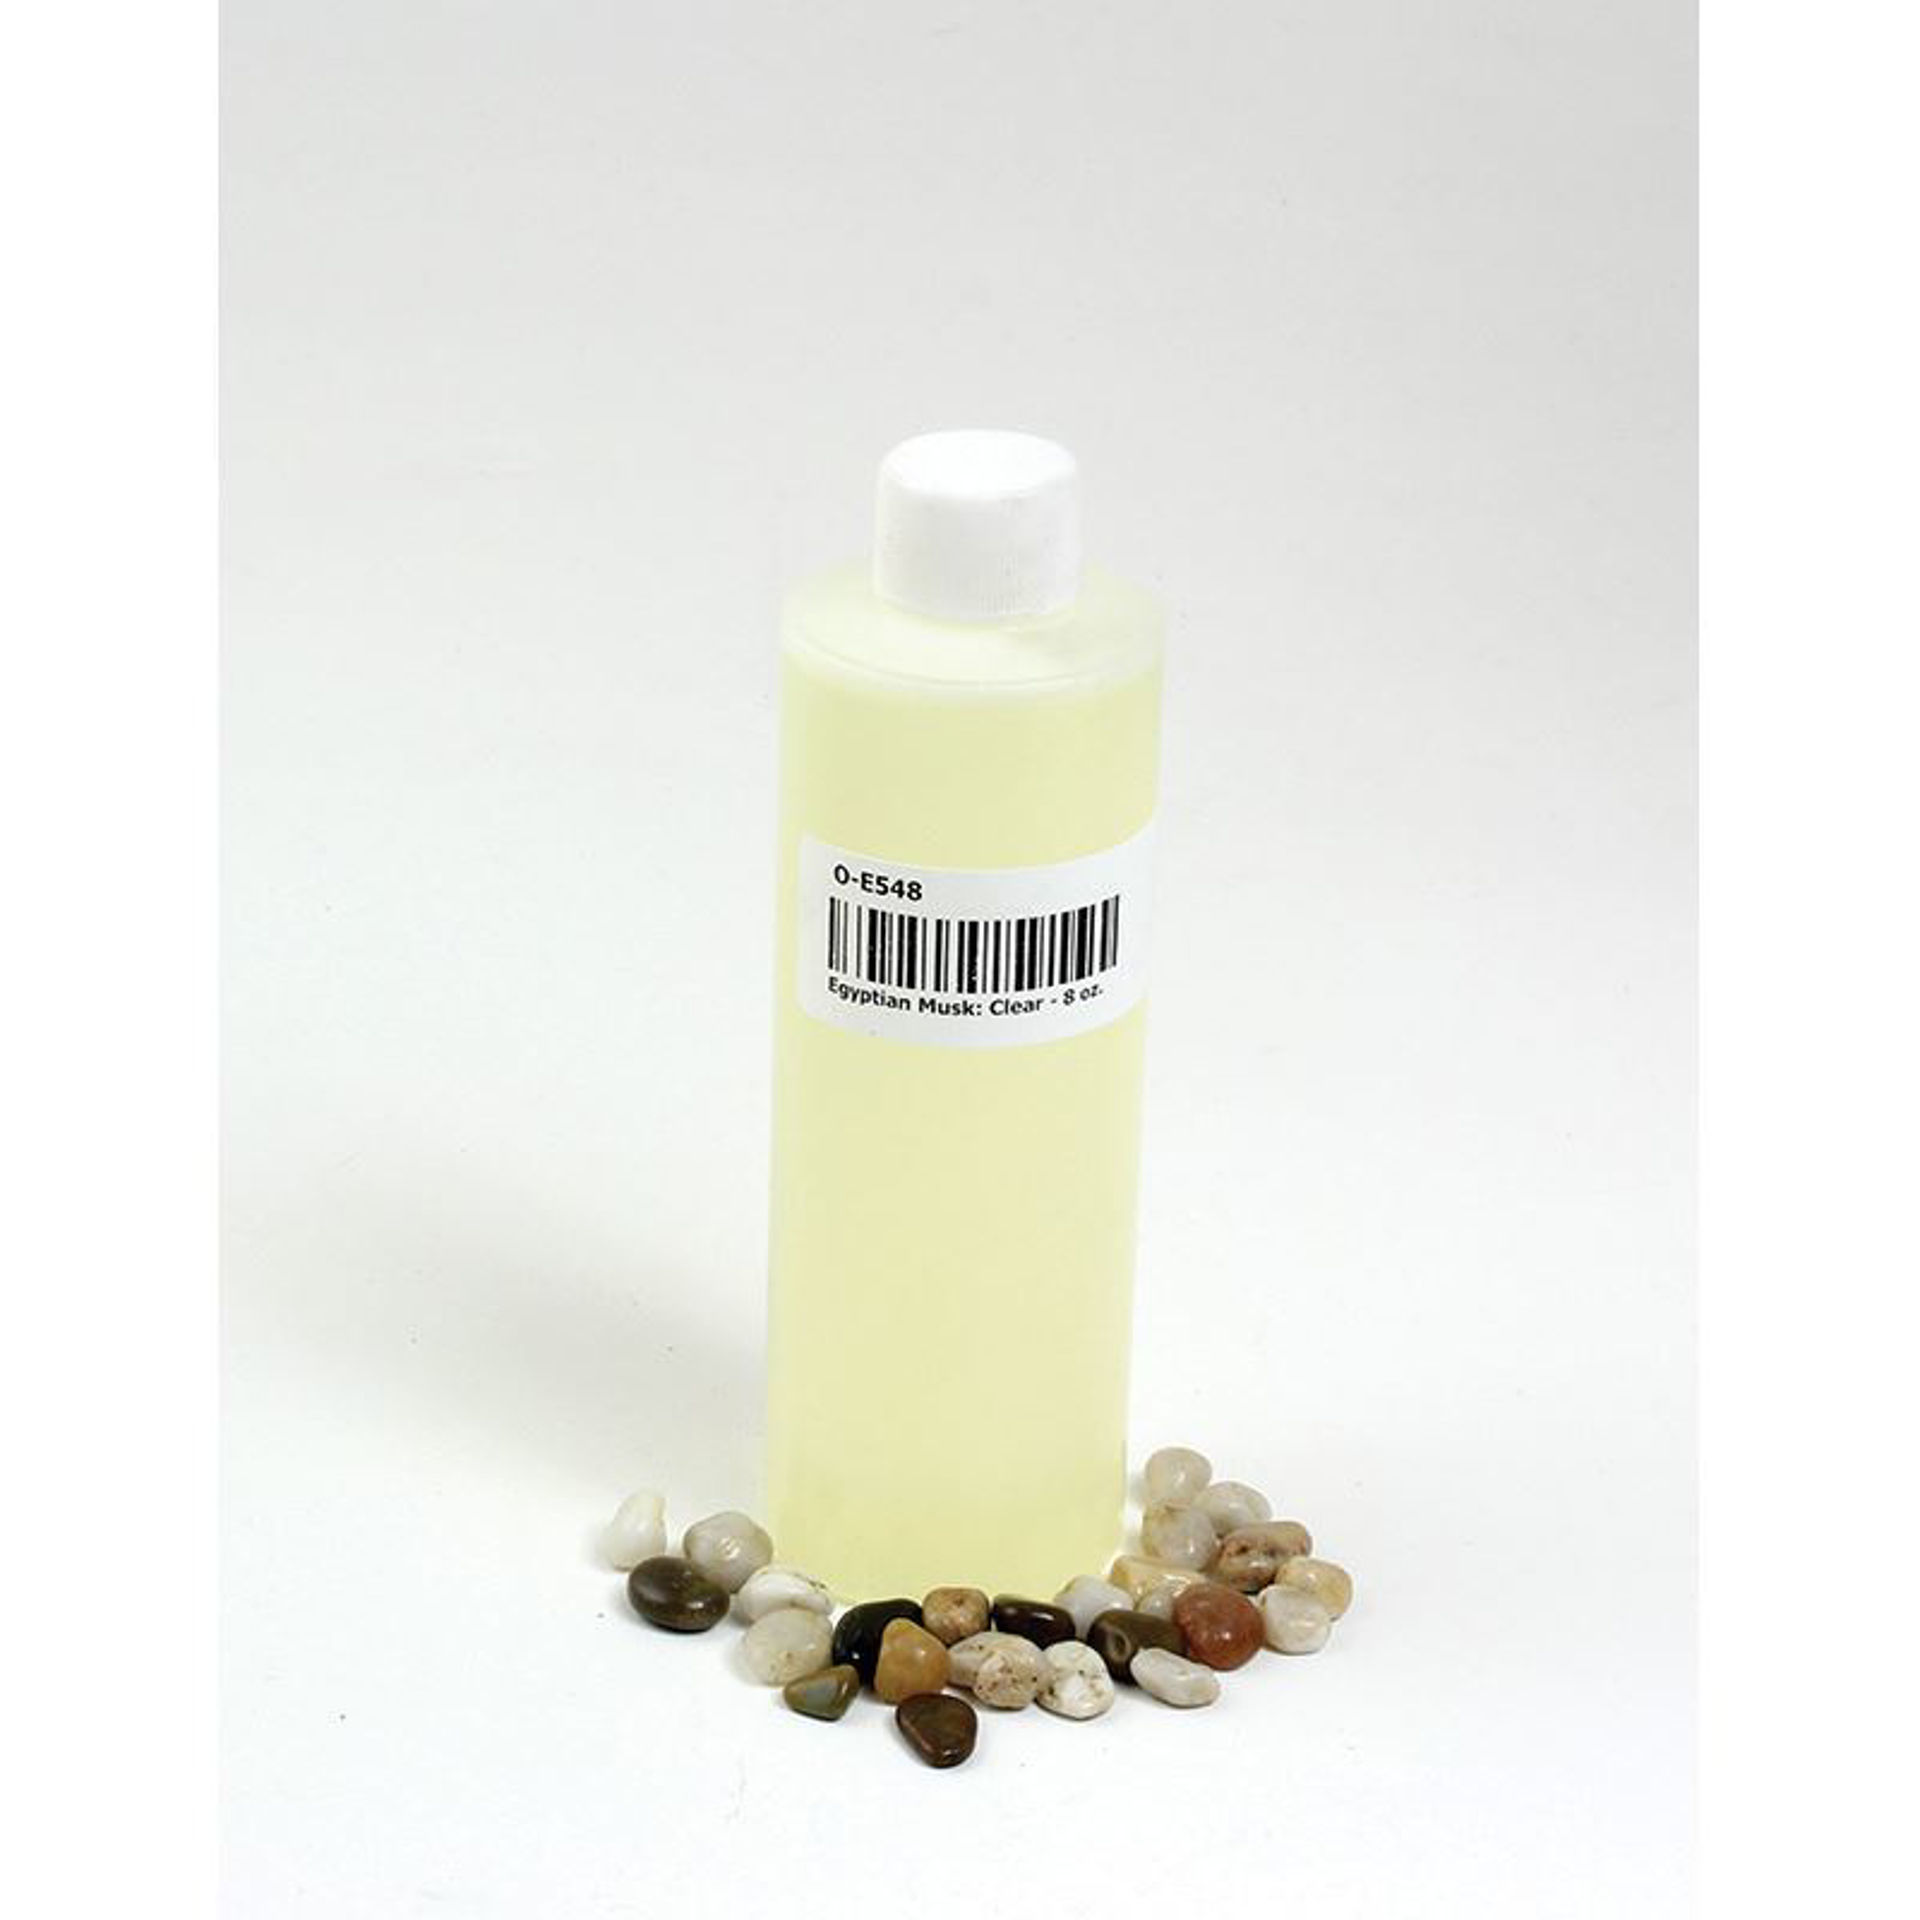 Picture of Egyptian Musk: Clear - 8 oz.